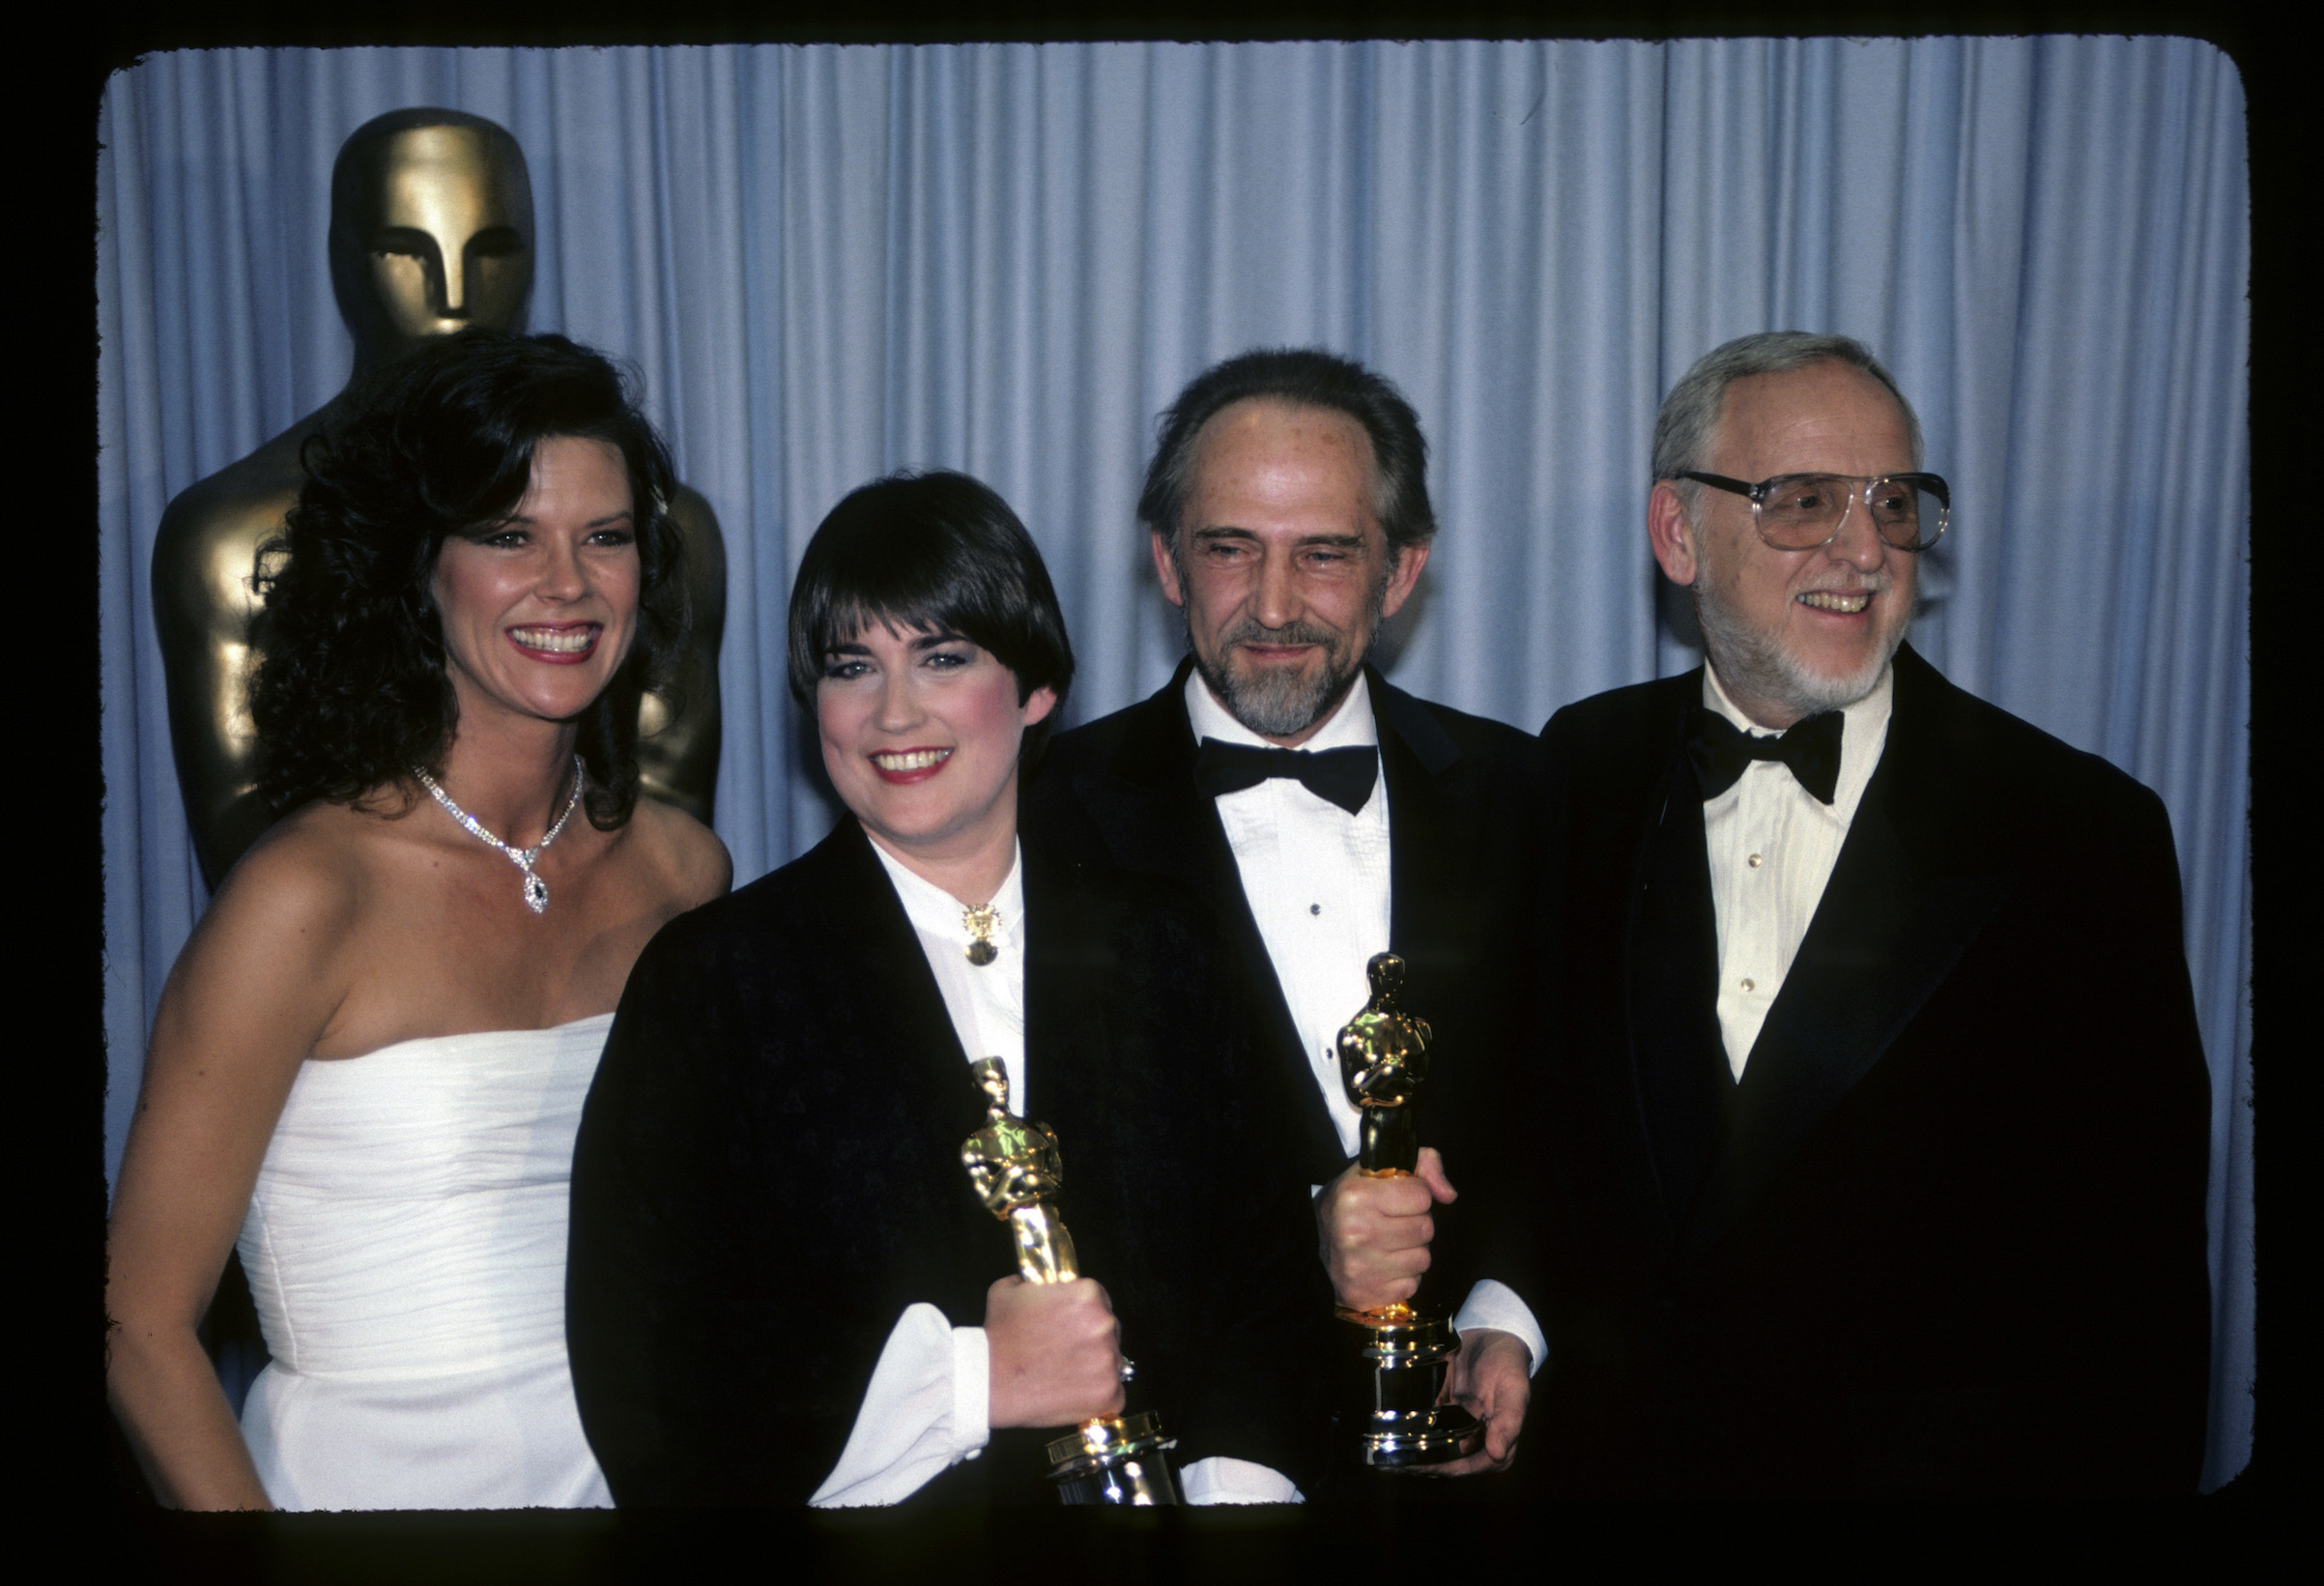 Director Terre Nash (2nd from L) and producer Edward le Lorrain (2nd from R) after winning an Oscar for 'If You Love This Planet' in 1983